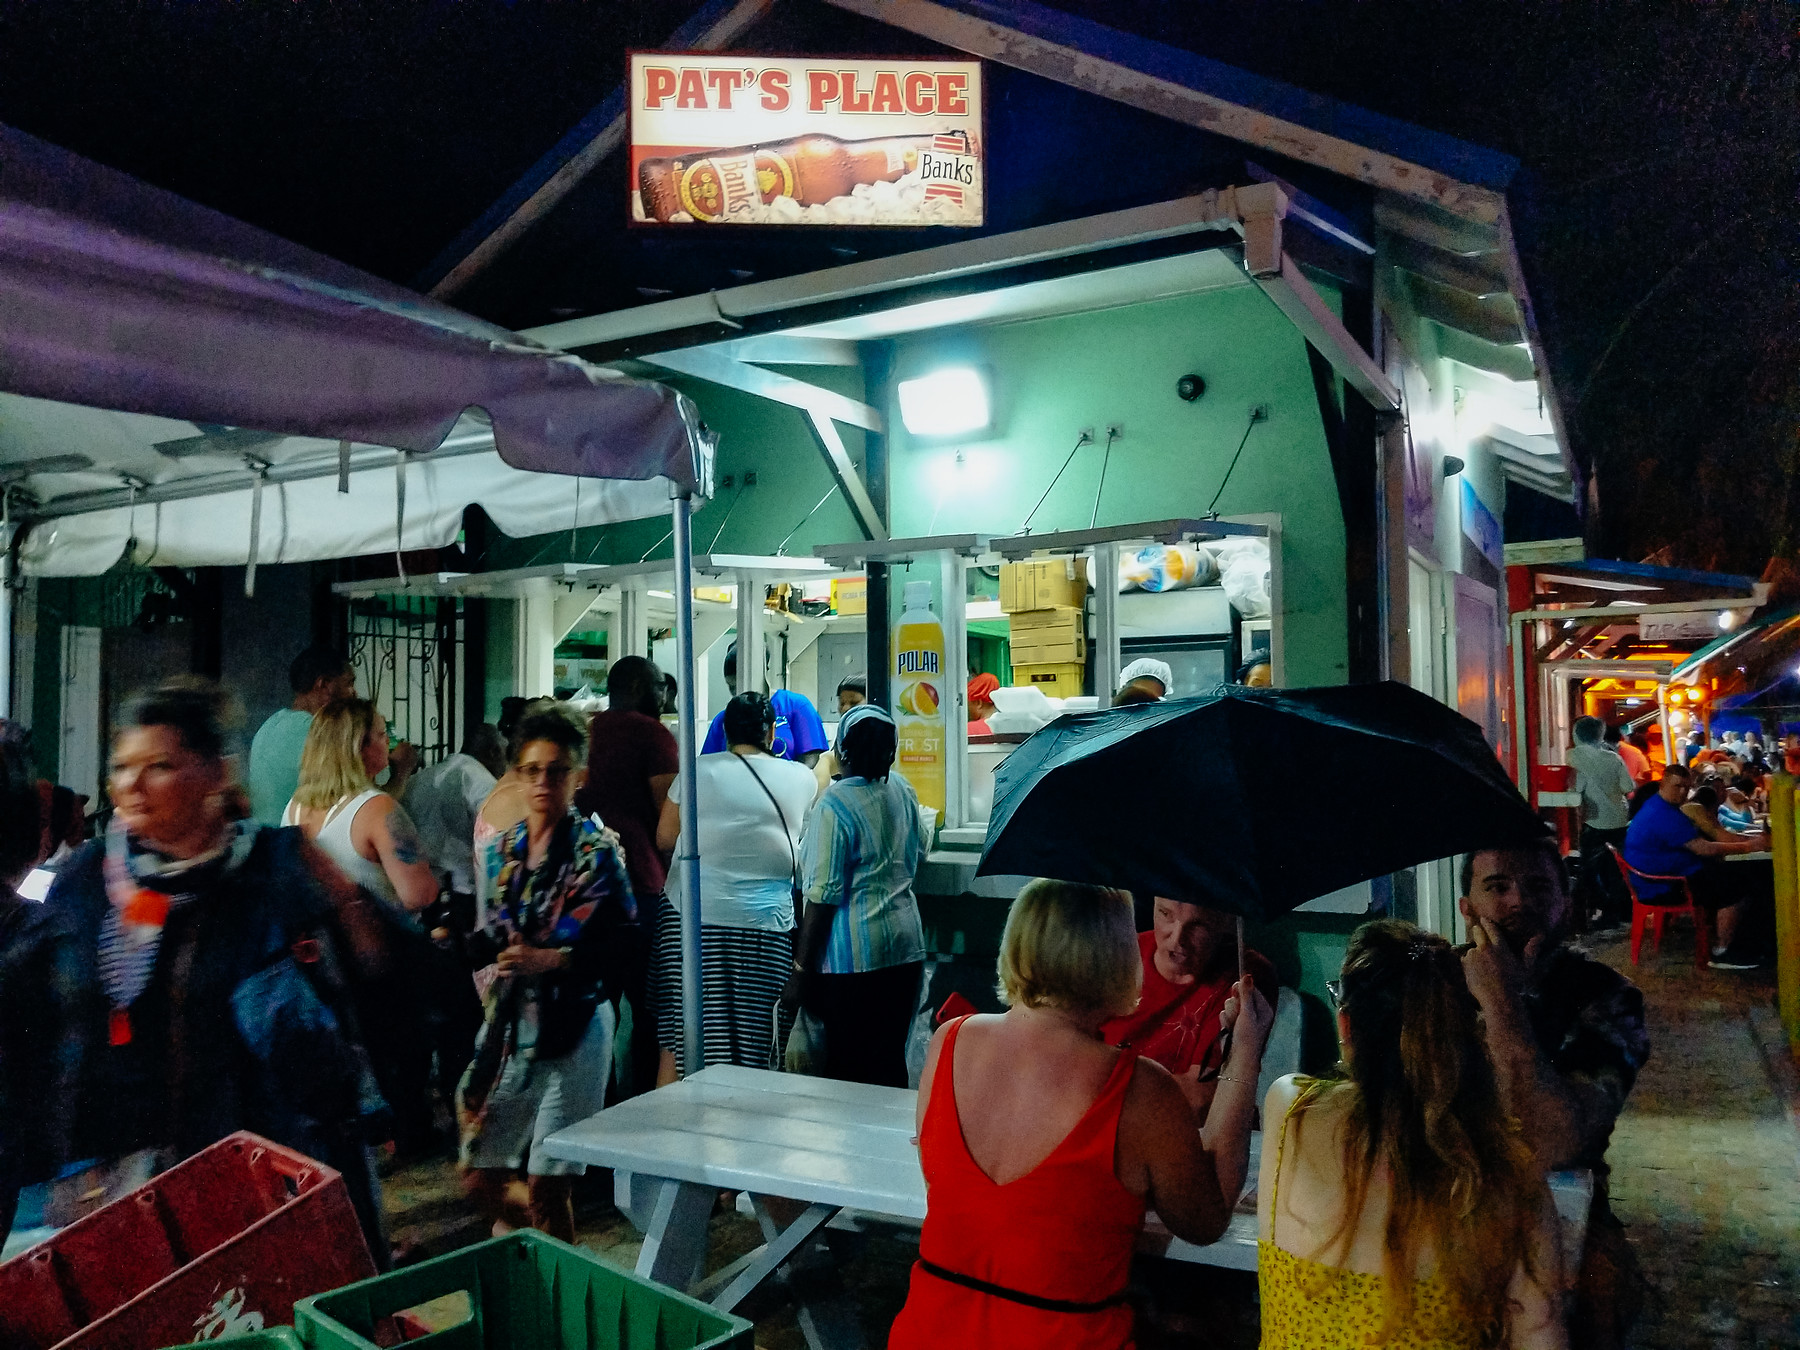 The best Barbados restaurants include Pat's Place at the iconic Oistin's Friday Night Fish Fry.